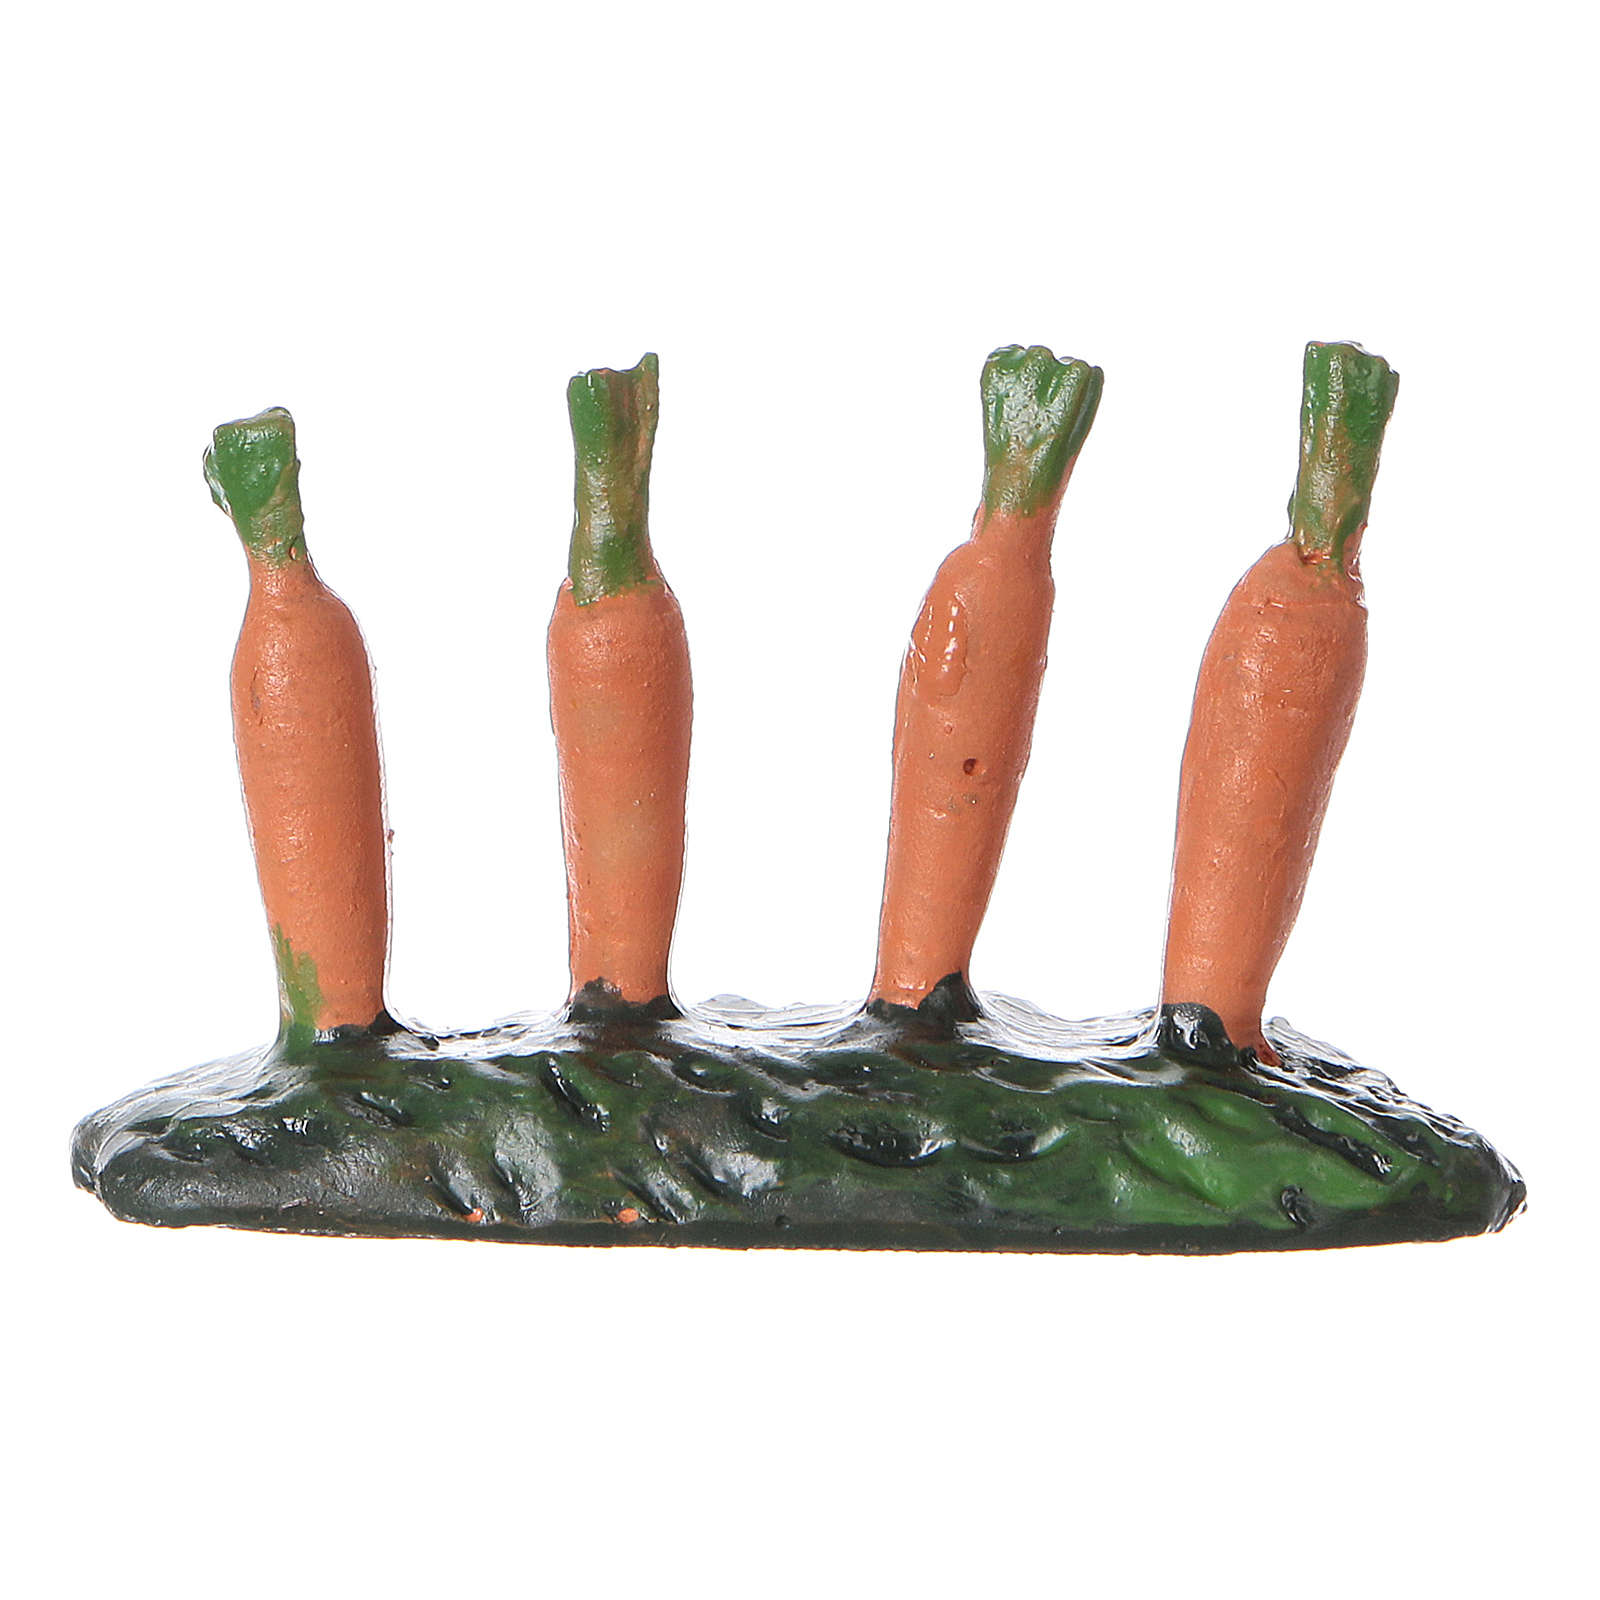 Row of carrots for vegetable garden 5x5x5 cm for Nativity scene 7 cm 4